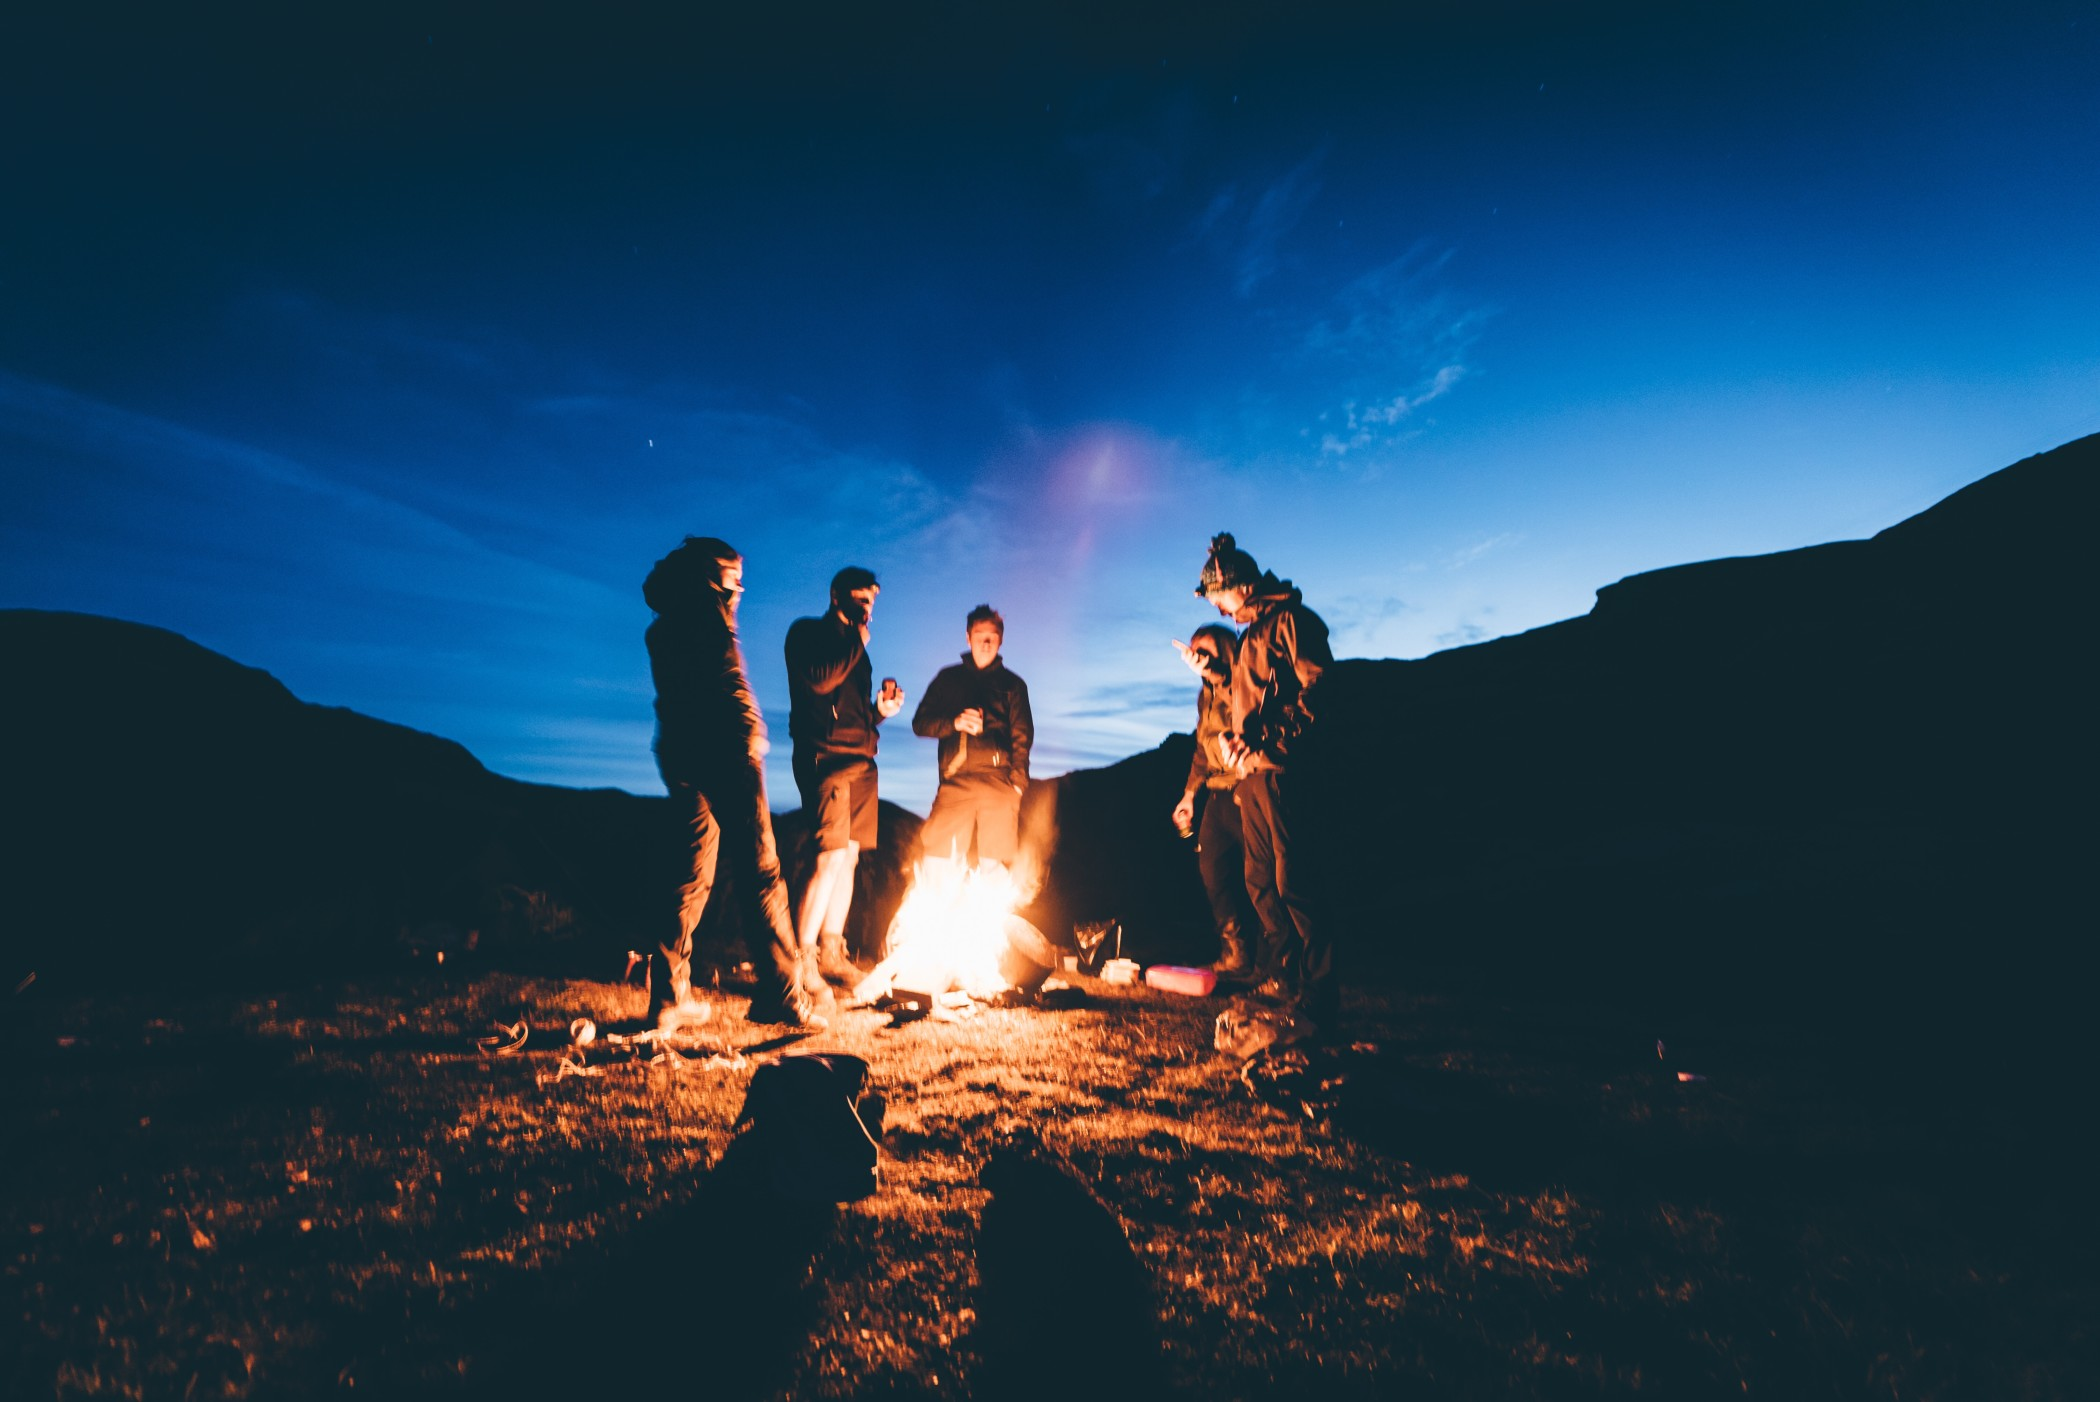 The Don'ts of Camping with Friends